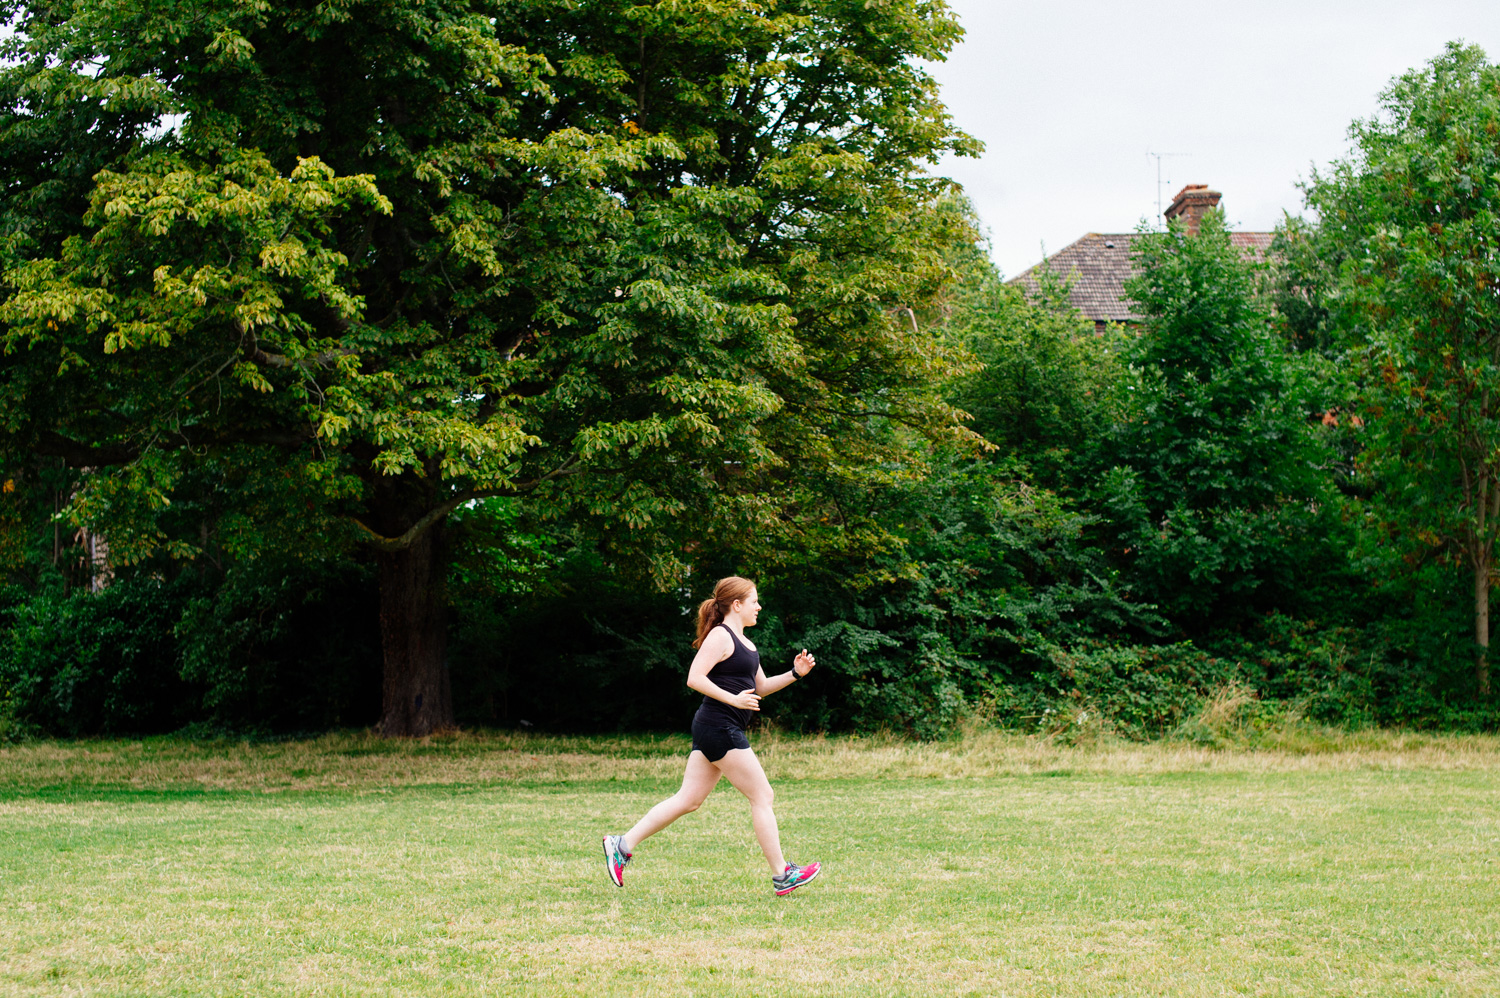 My Next Race Bacchus Half Marathon - A Pretty Place to Play, London Running and Fitness Blog